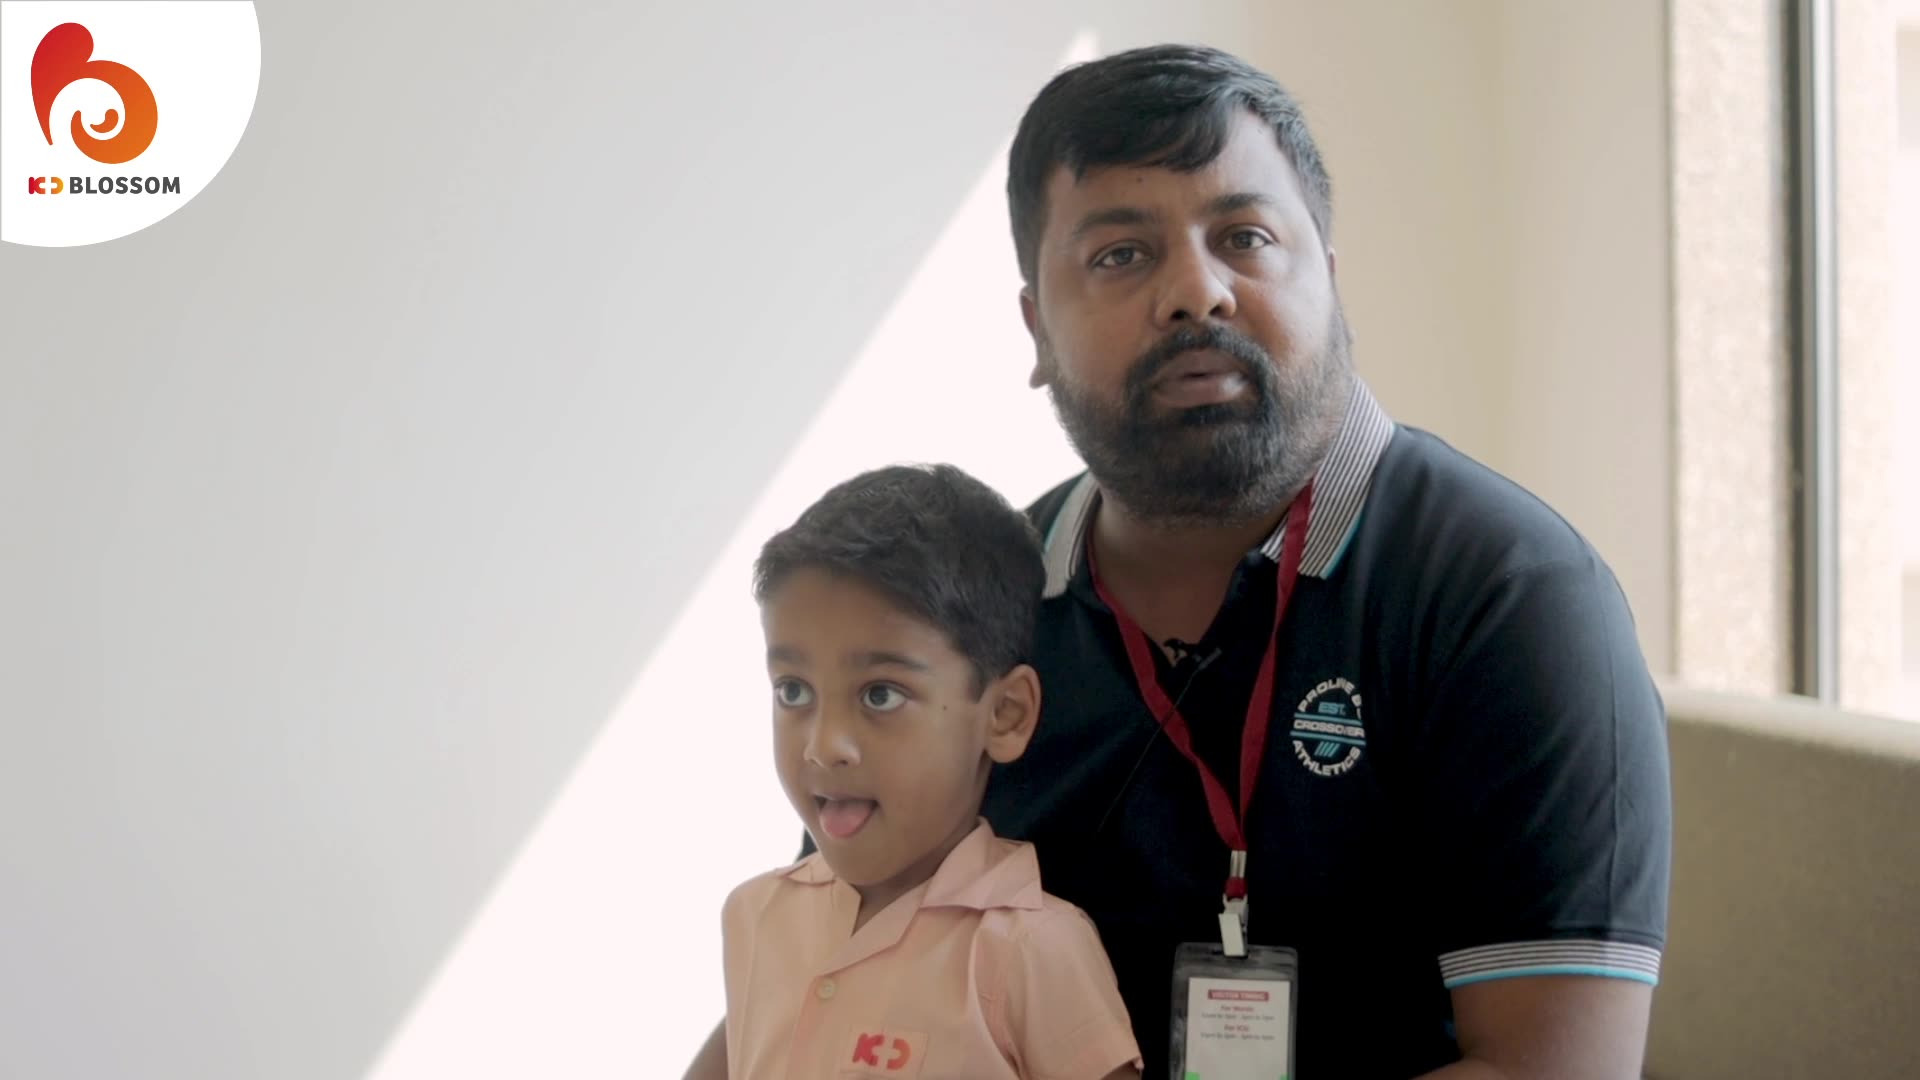 Nothing makes KD Blossom & Dr. Vishwanath Shukla happier than hearing a great patient experience. Hear the story of little Harsh from his father, Mr. Maniyar.  #KDBlossom #KDHospital  #Paediatrician #Paediatrics #Patientcare #patienttestimonial #patient #testimonial #testimony #Awareness #wellness #goodhealth #wellnessthatworks #Nusring #NABHHospital #QualityCare #hospitals #doctors #Nurses #healthcare #medical #health #Ahmedabad #Gujarat #India